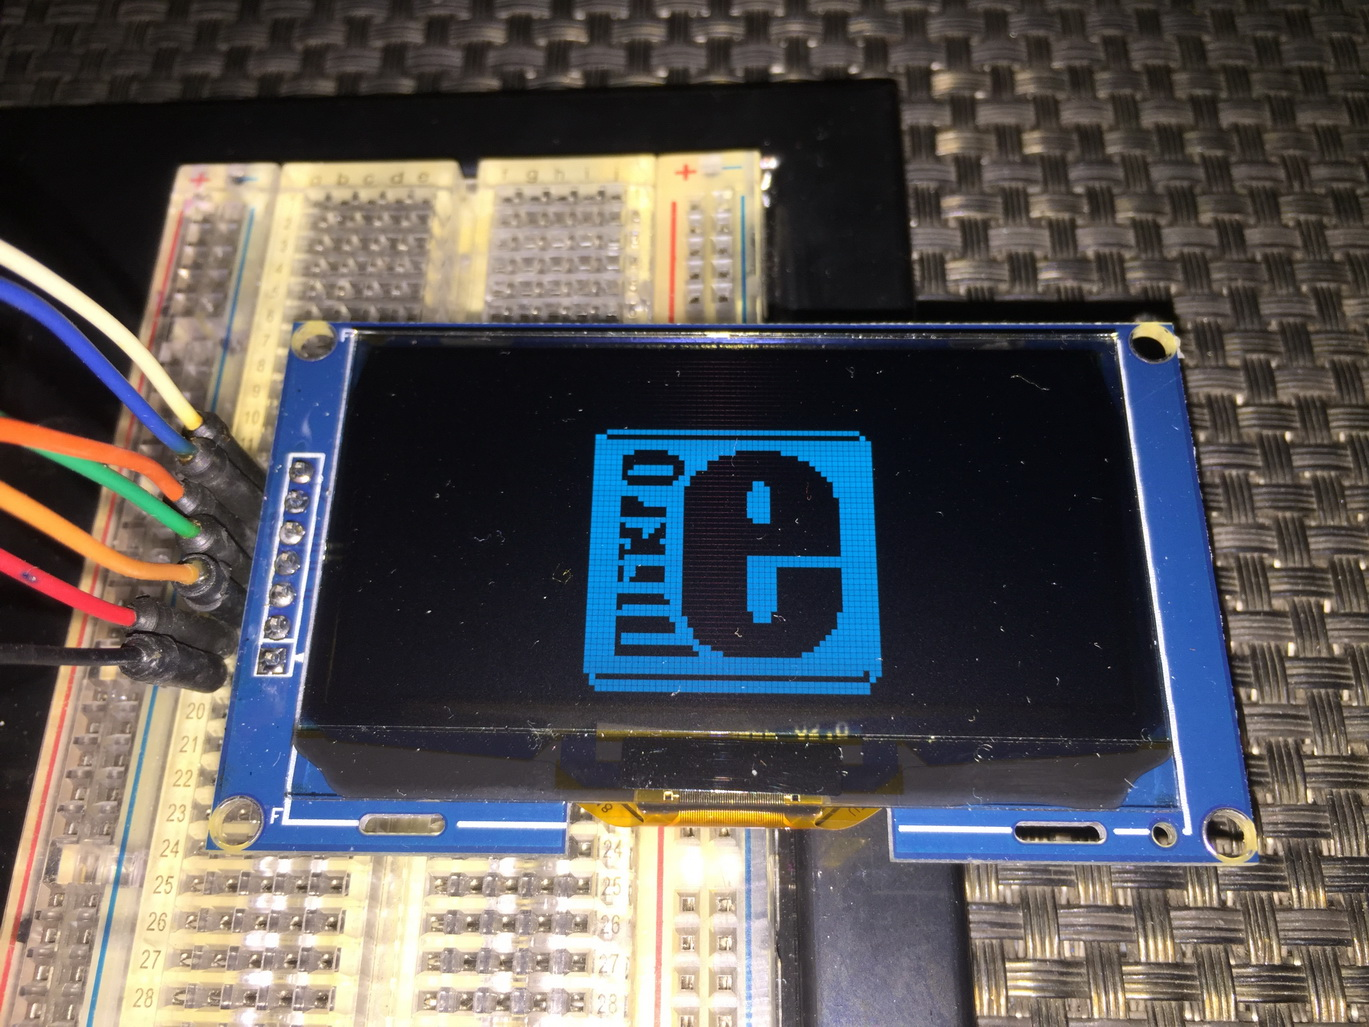 LibStock - SSD1309 OLED Library